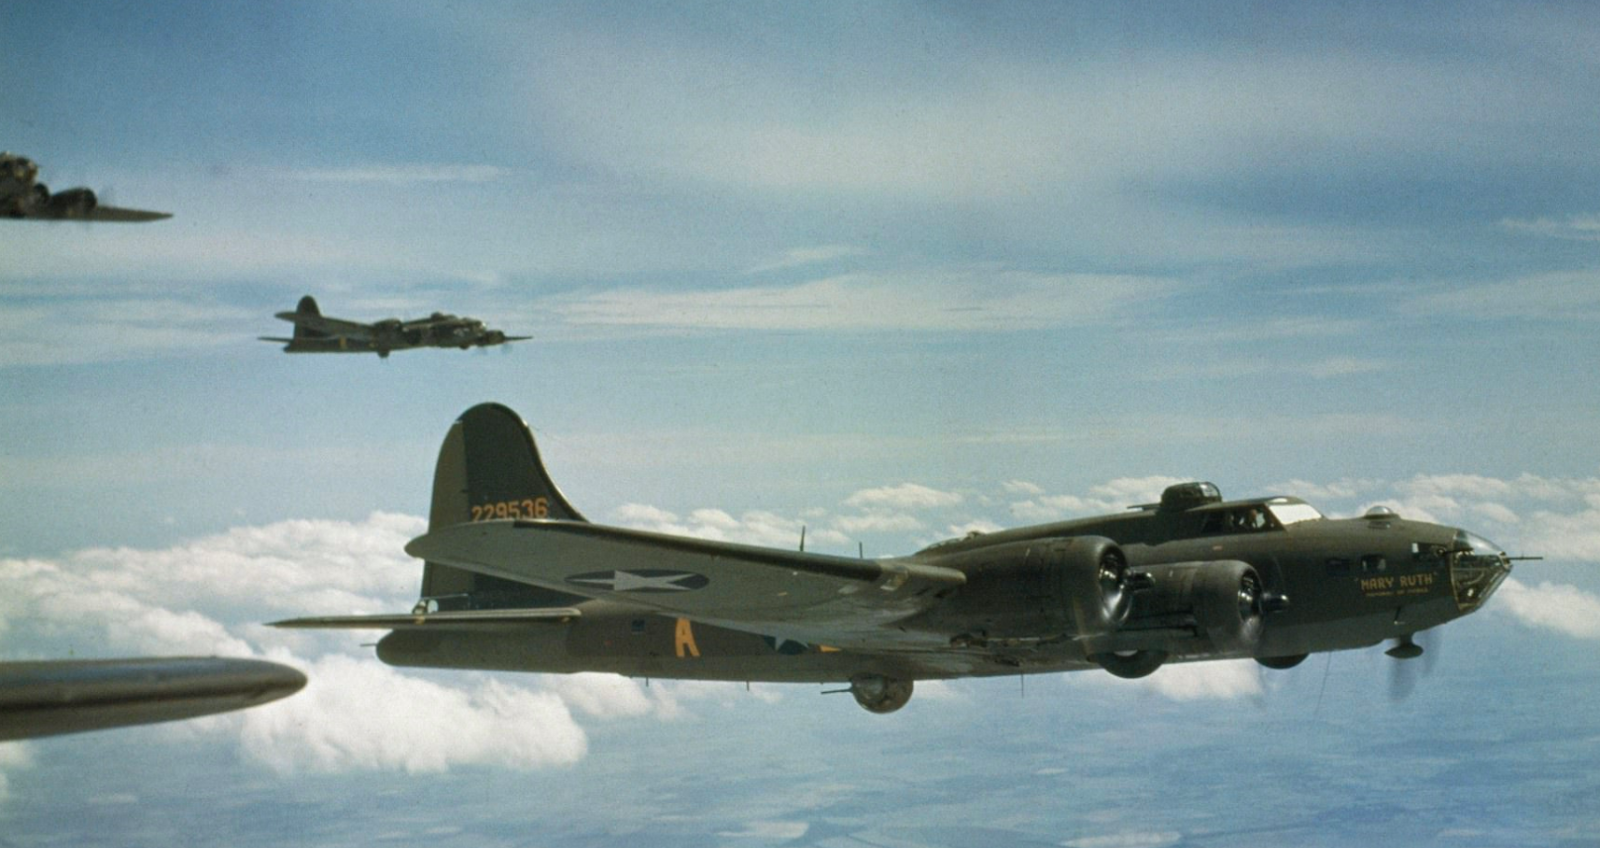 May 1943 B-17F Flying Fortress 'Mary Ruth - Memories of Mobile' of the 91st Bomb Group, US Eighth Air Force